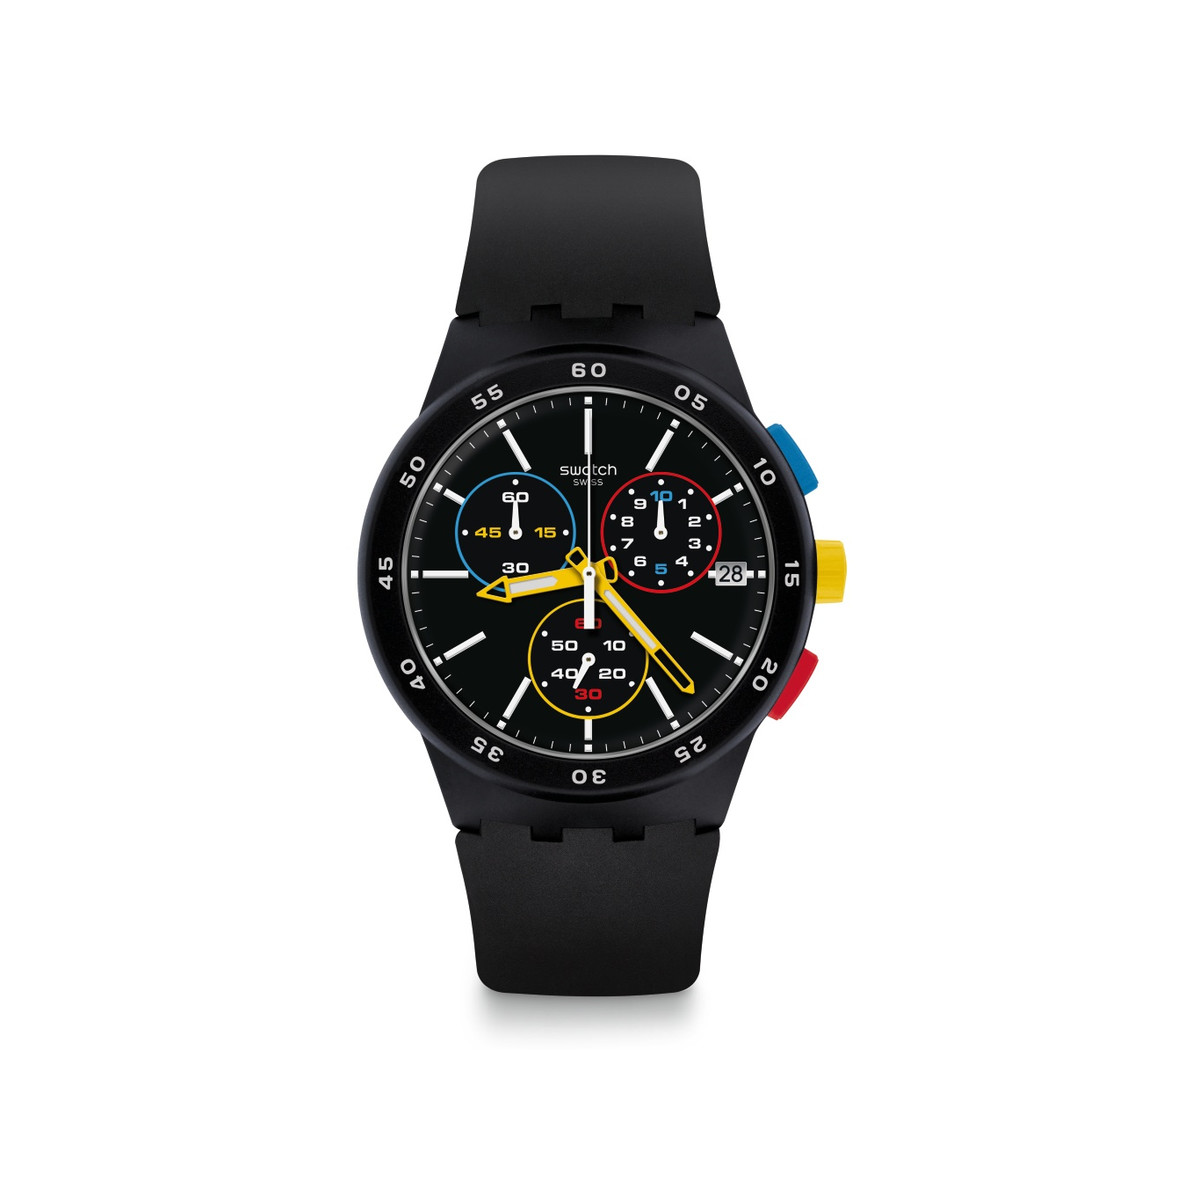 Montre Swatch homme chronographe silicone noir - vue V1